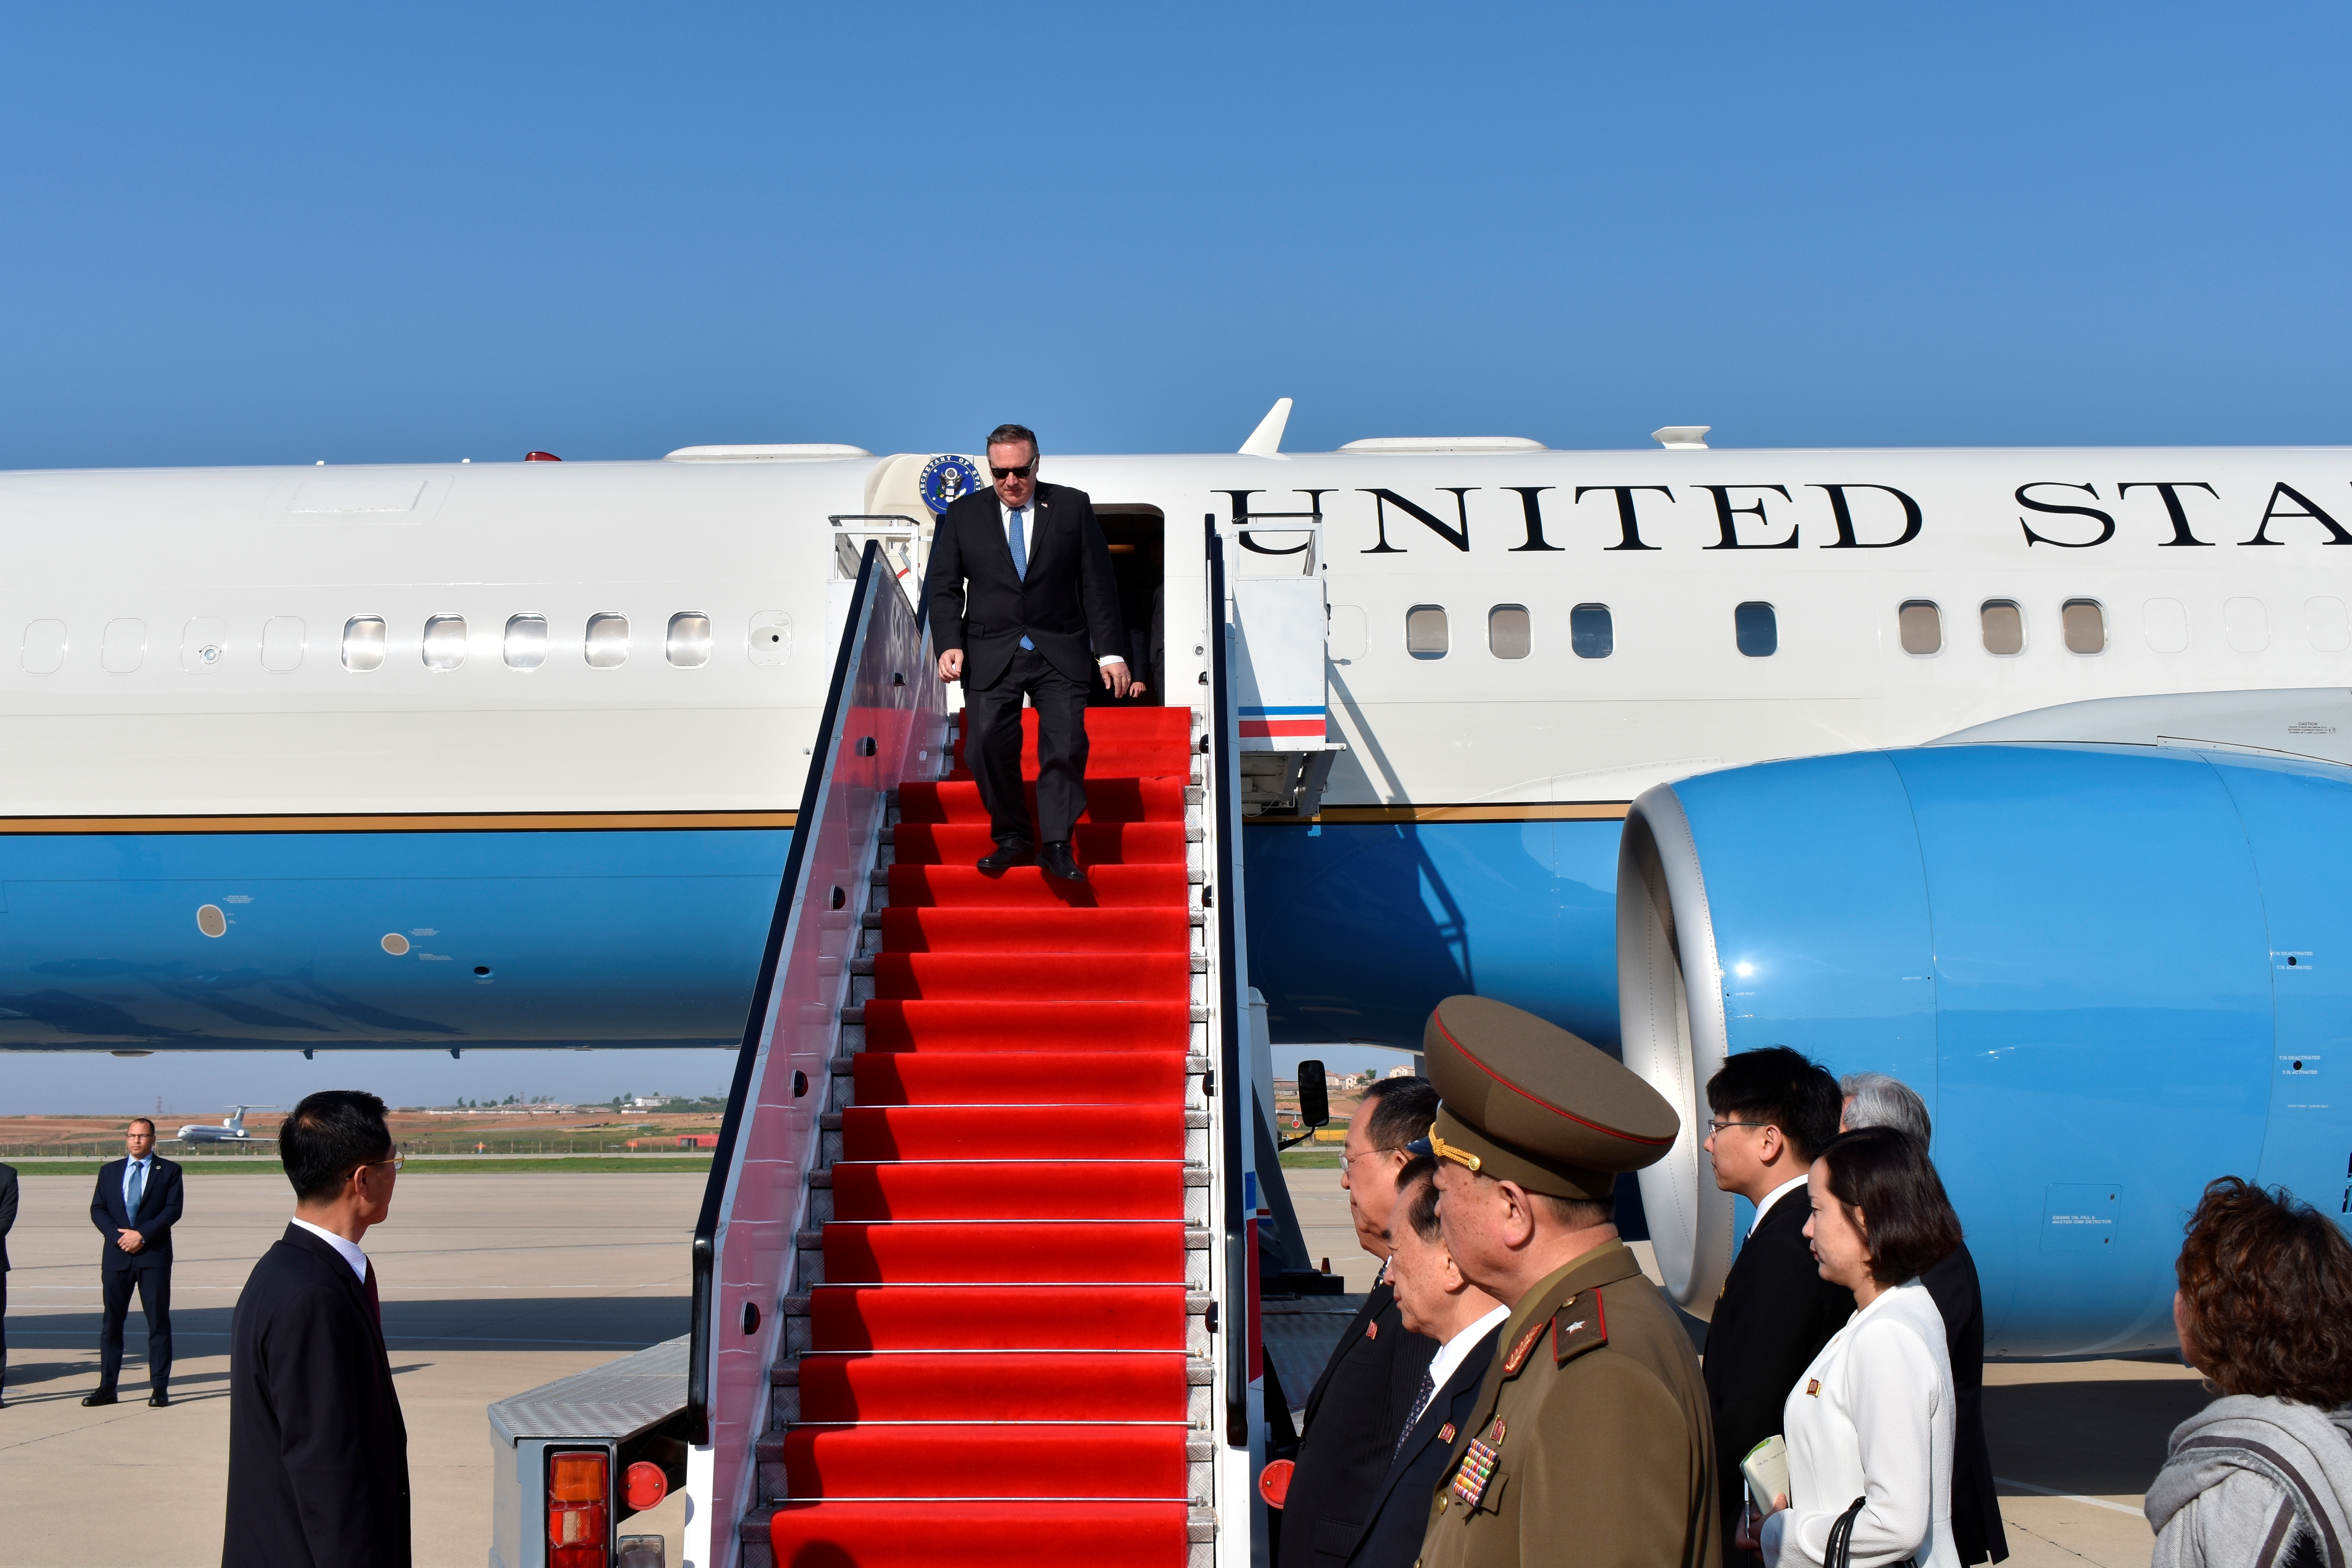 U.S. Secretary of State Mike Pompeo exits his plane on arrival in Pyongyang, North Korea, May 9, 2018.